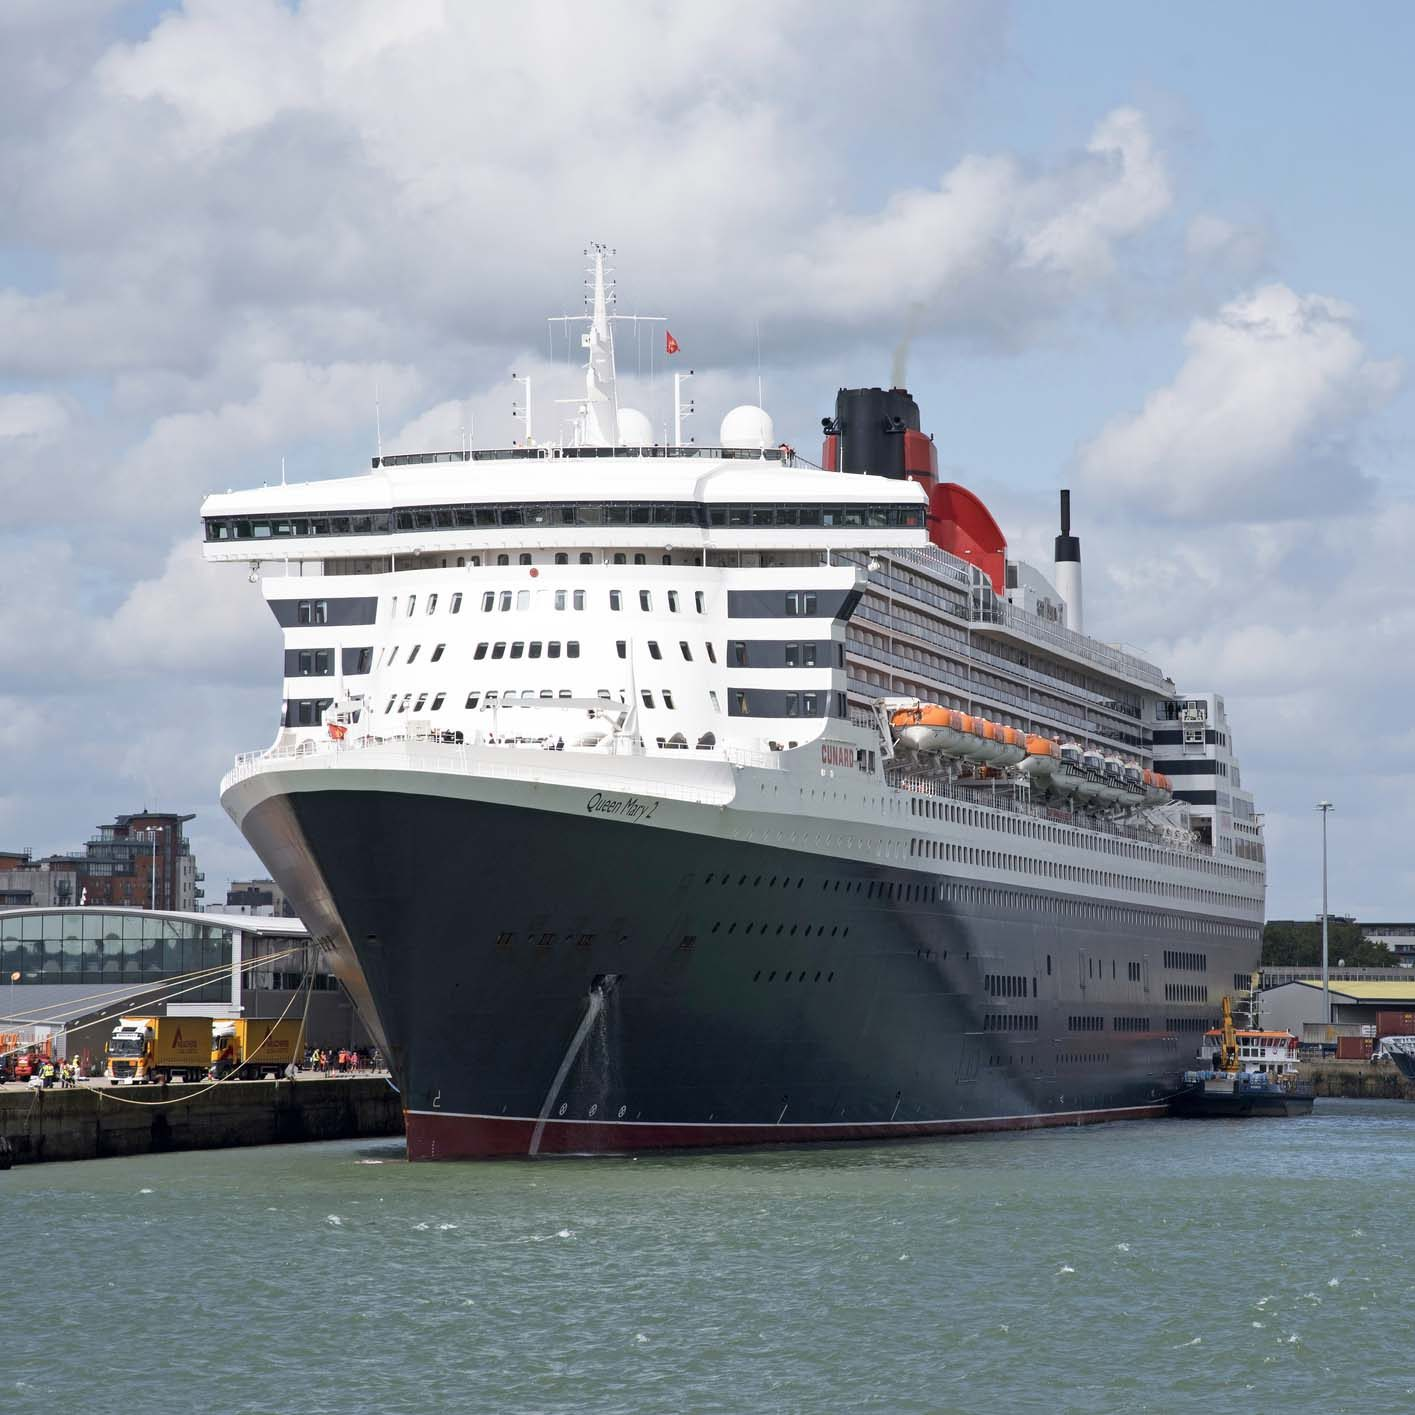 Queen Mary 2 cruise liner alongside her berth in the Port of Southampton England UK August 2017